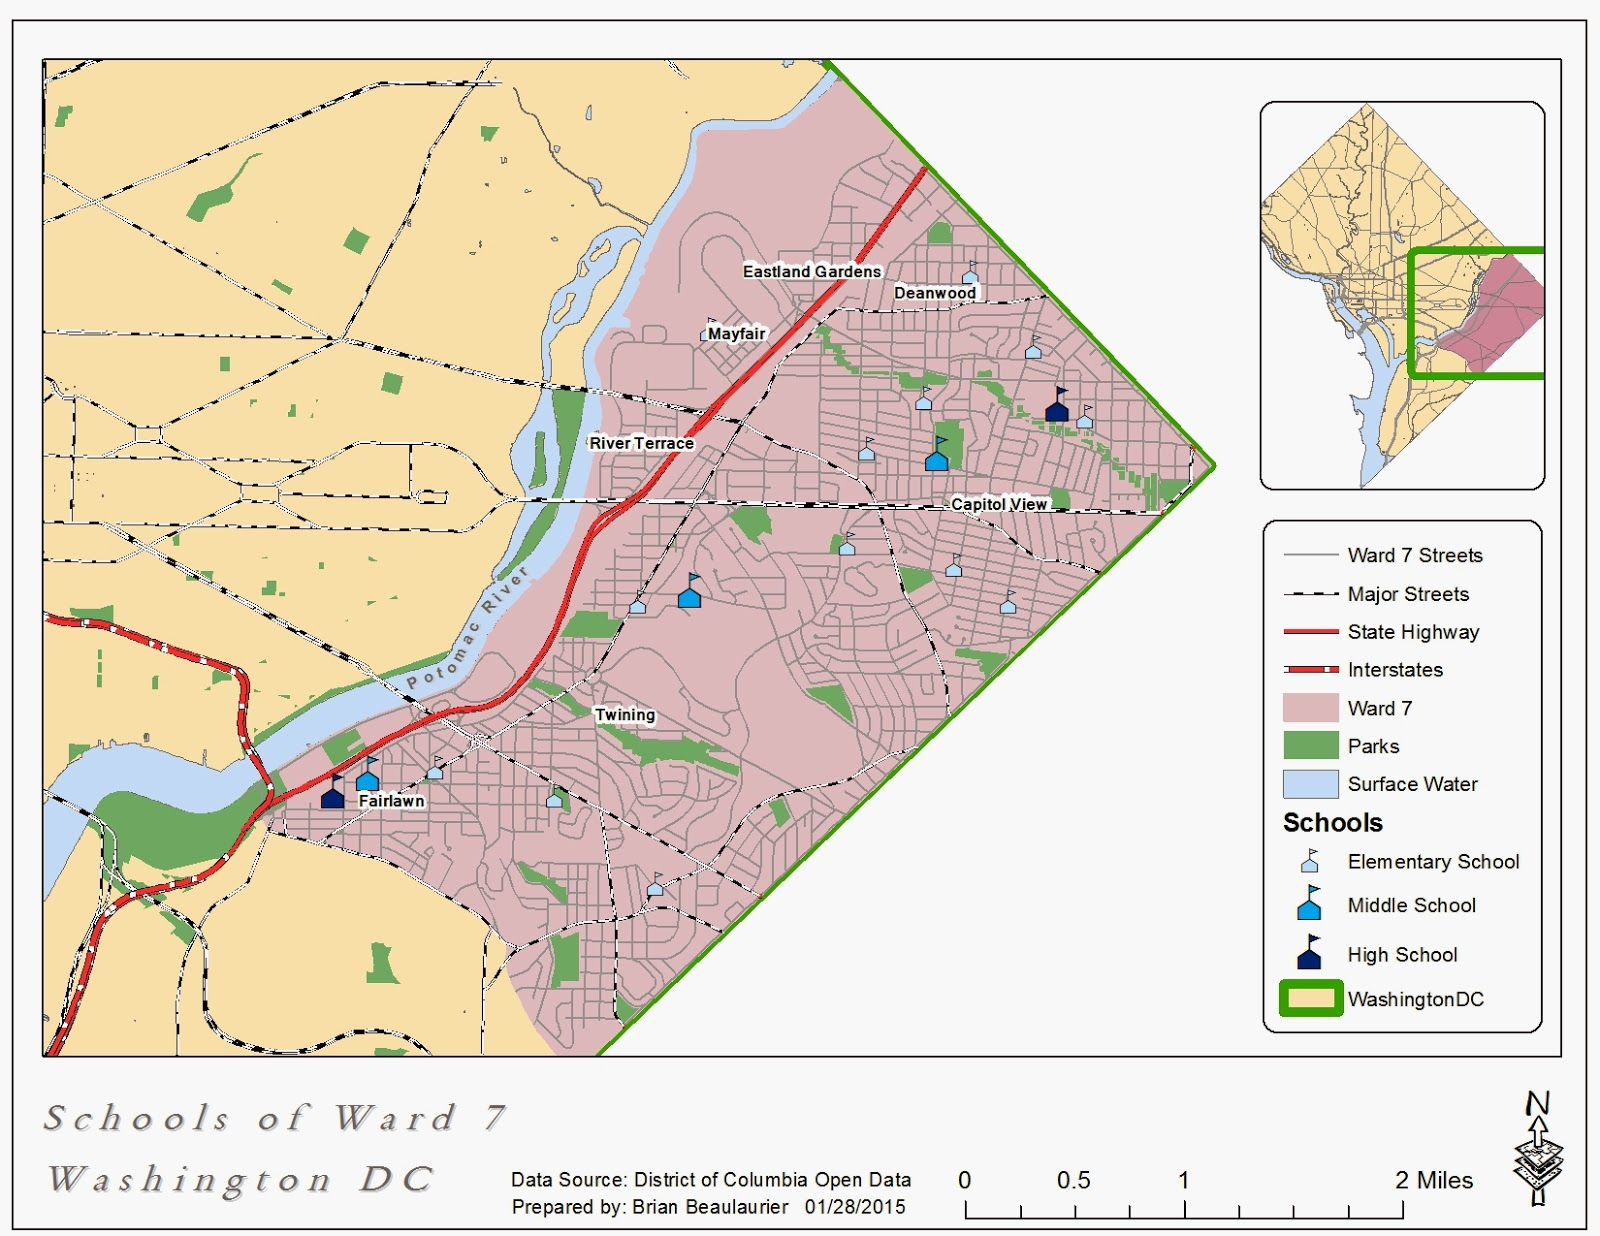 The Notorious Gis Map Of Schools In Ward 7 Washington Dc